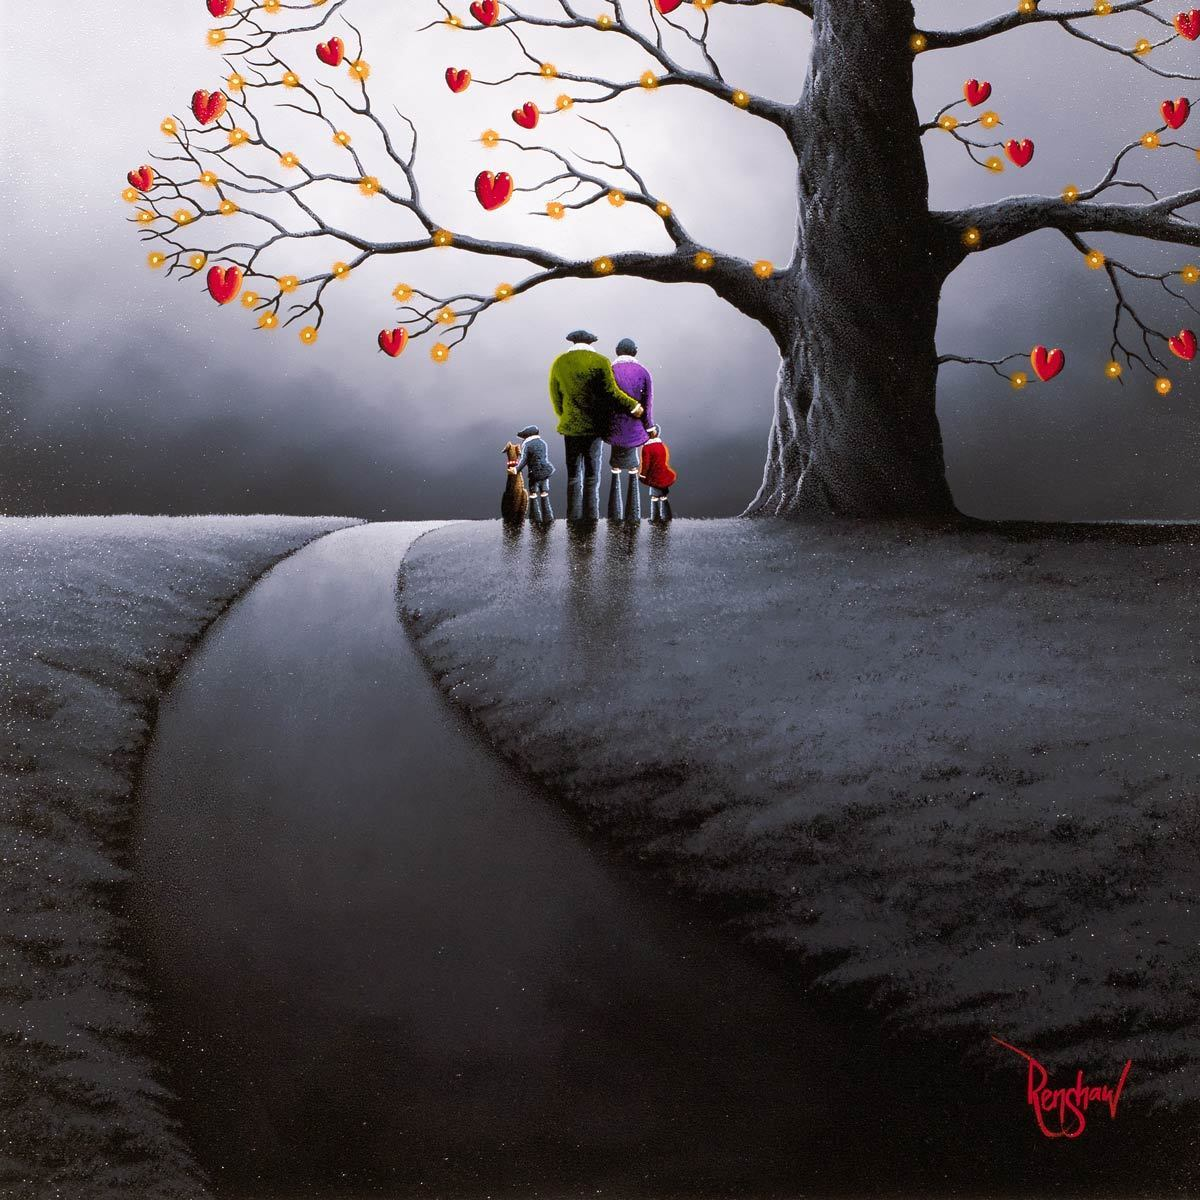 After The Rain - Original David Renshaw Framed